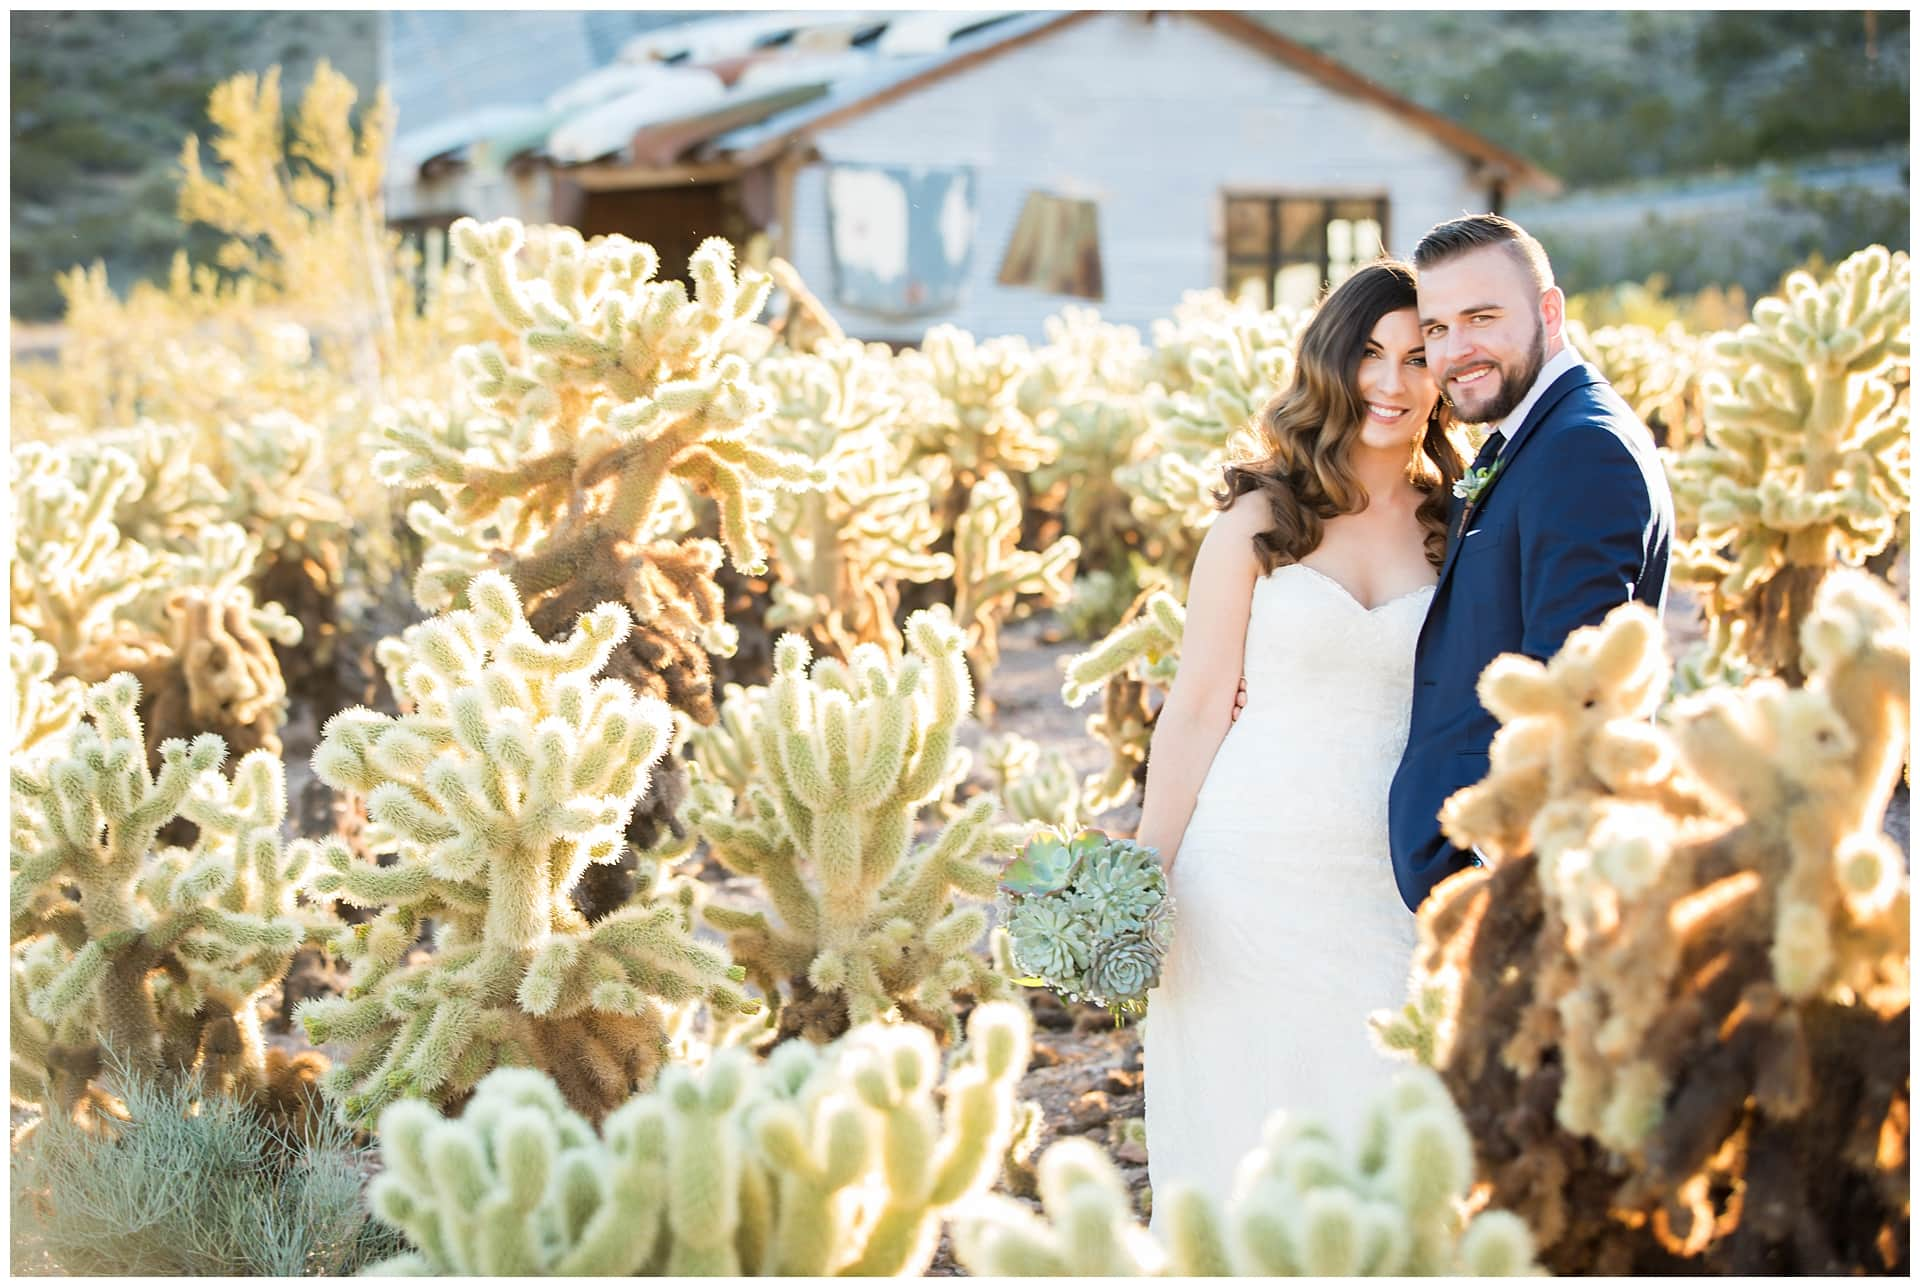 Eldorado Canyon Best Wedding Venues by Cactus Collective Weddings in Las Vegas